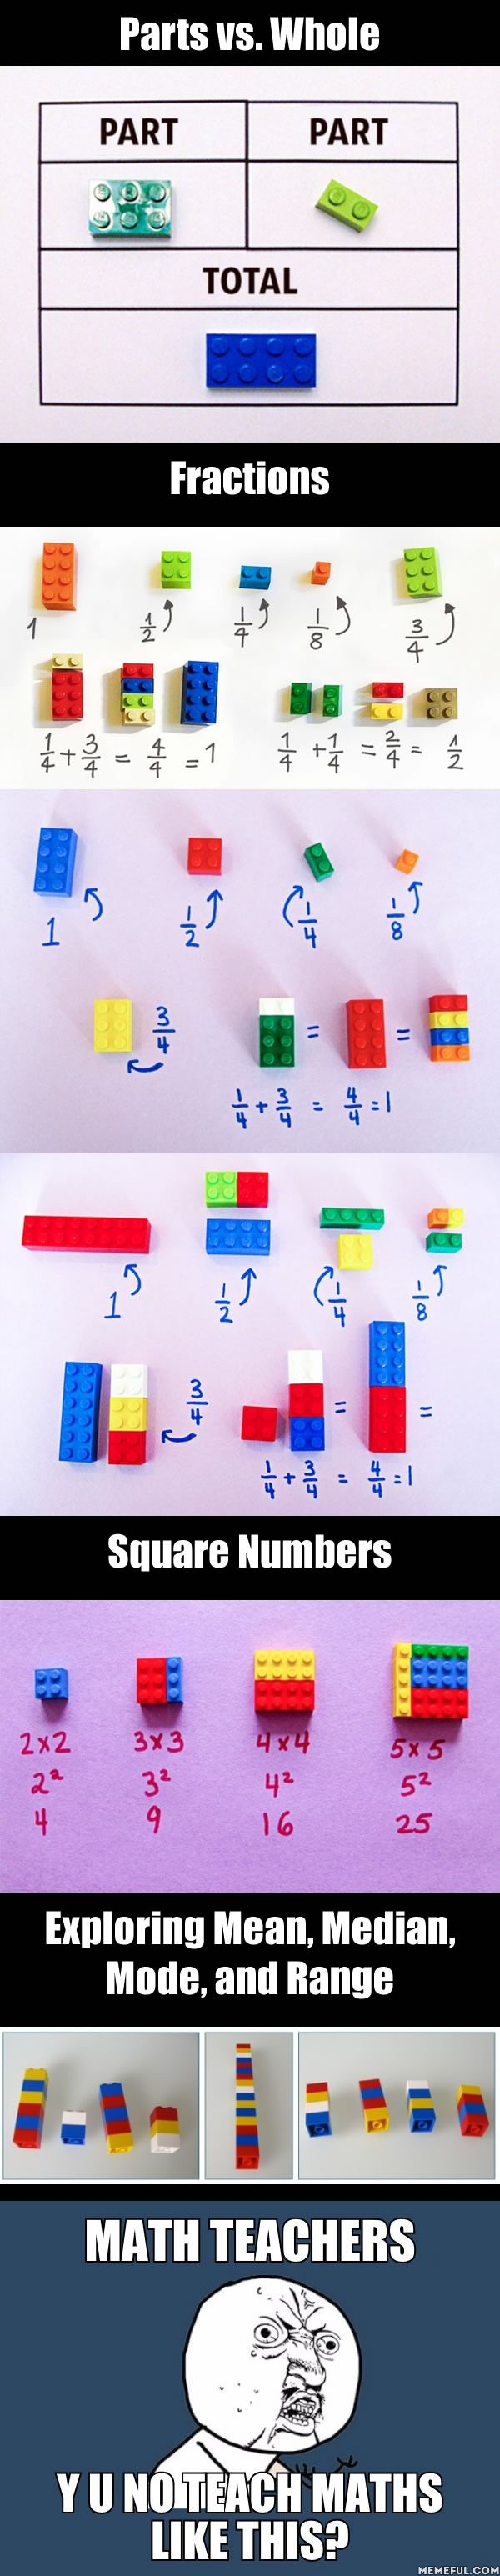 Teach maths with lego